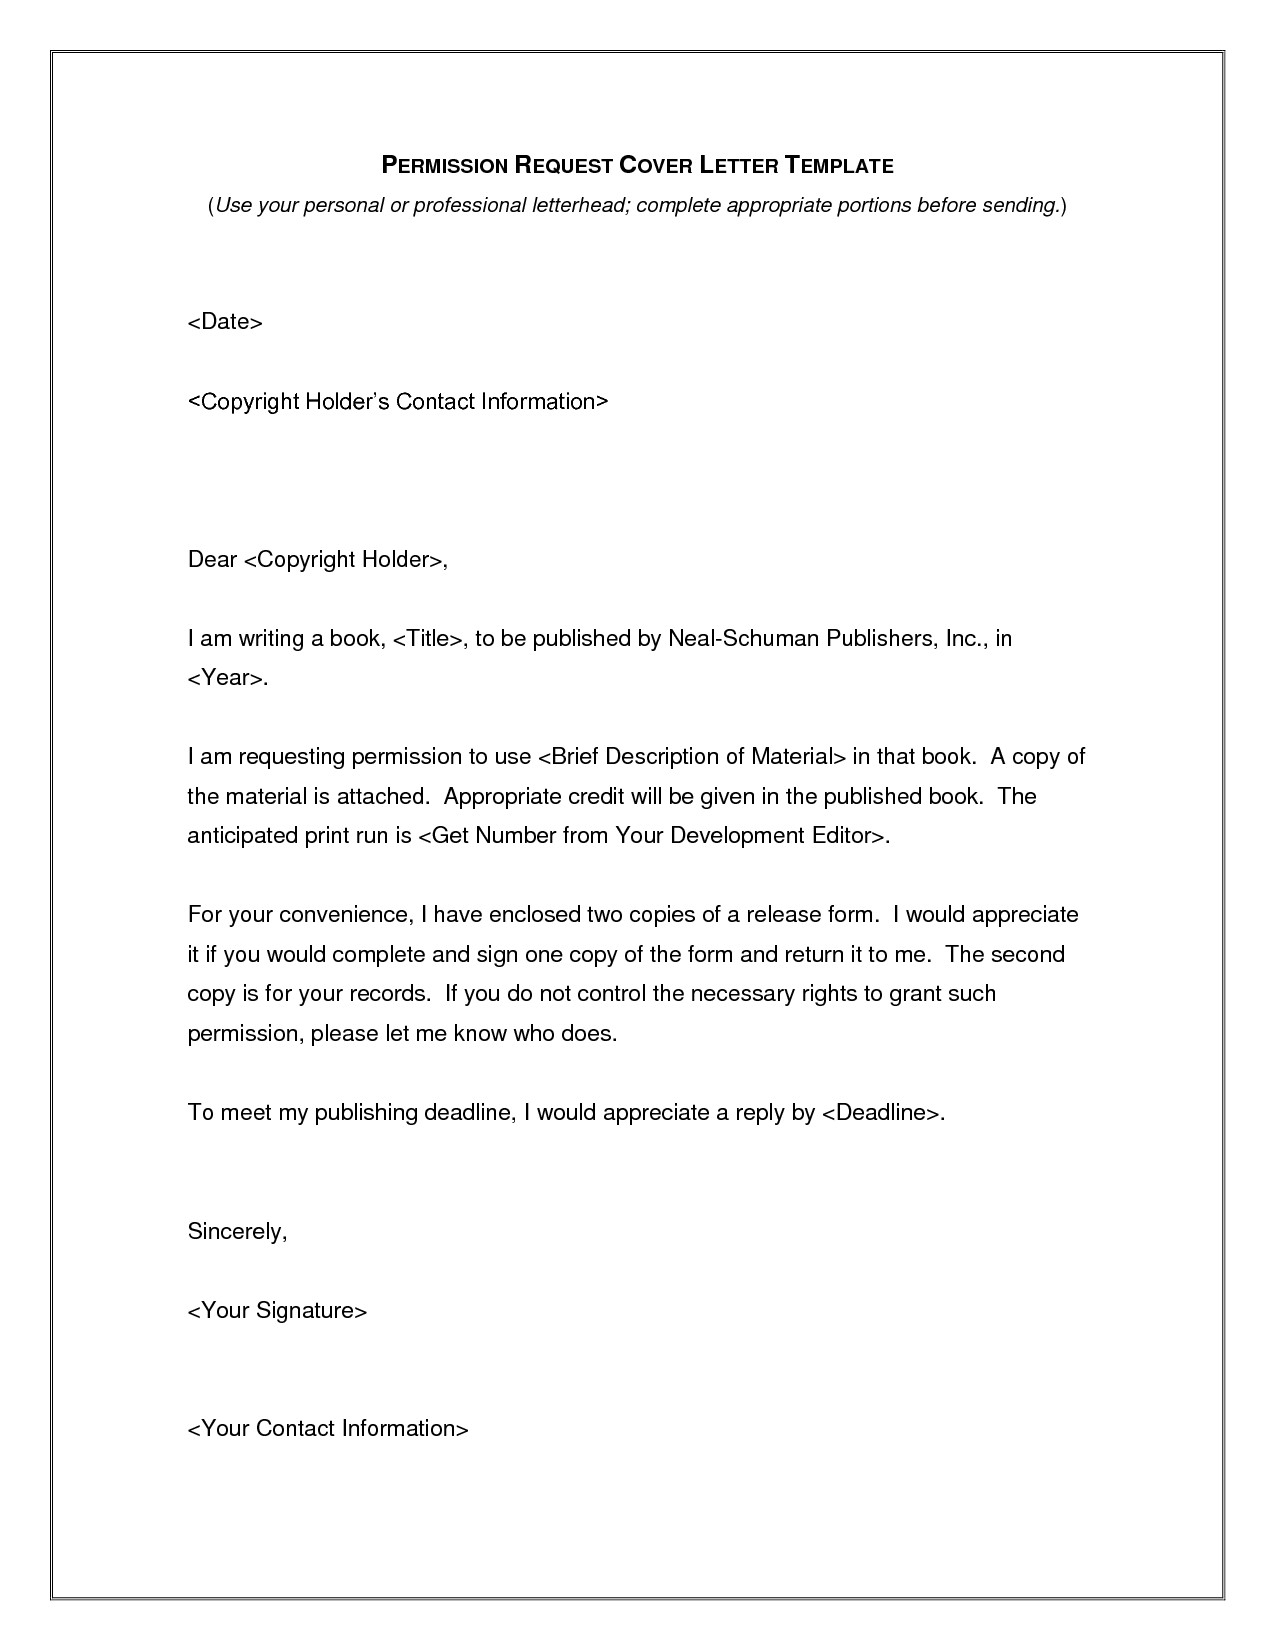 Copyright Permission Letter Template - Cover Letter Sample for Publishing Pany Valid Best S Brief Cover